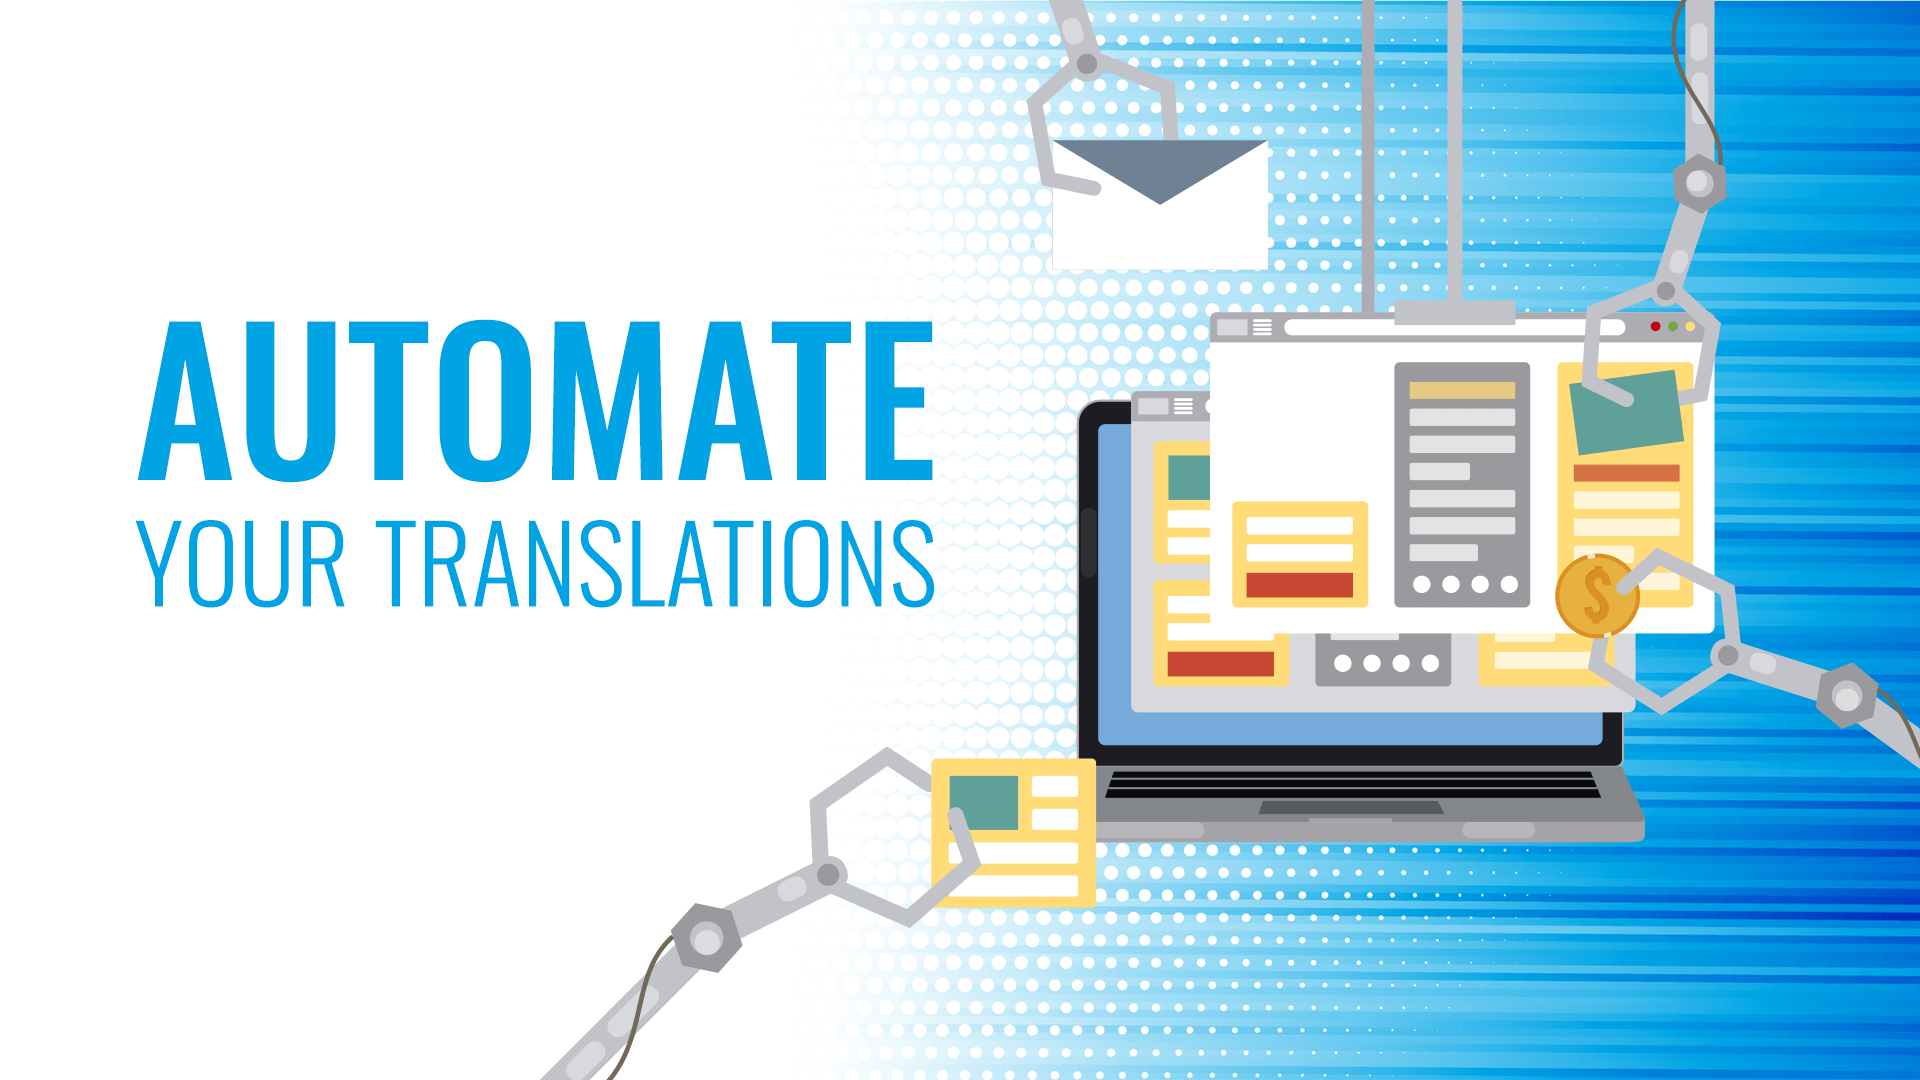 Automate your translations with XTM Cloud